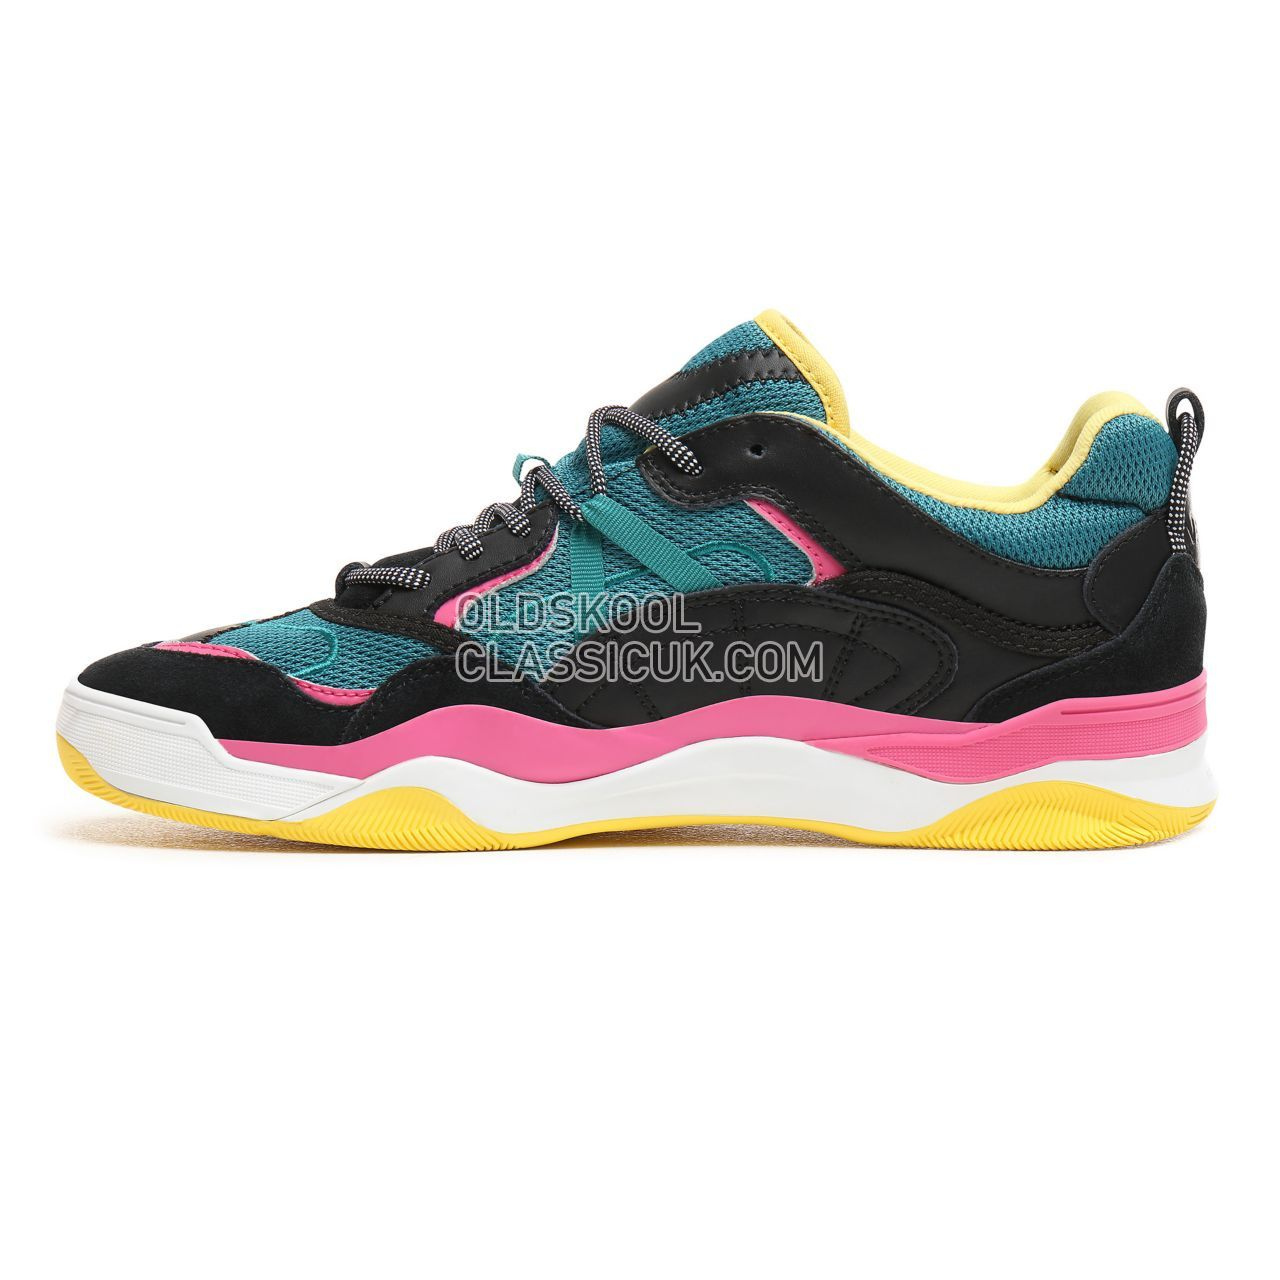 ddab63d1a7ad13 ... Vans Varix WC Sneakers Mens Black Quetzal Green Carmine Rose  VN0A3WLNT47 Shoes ...